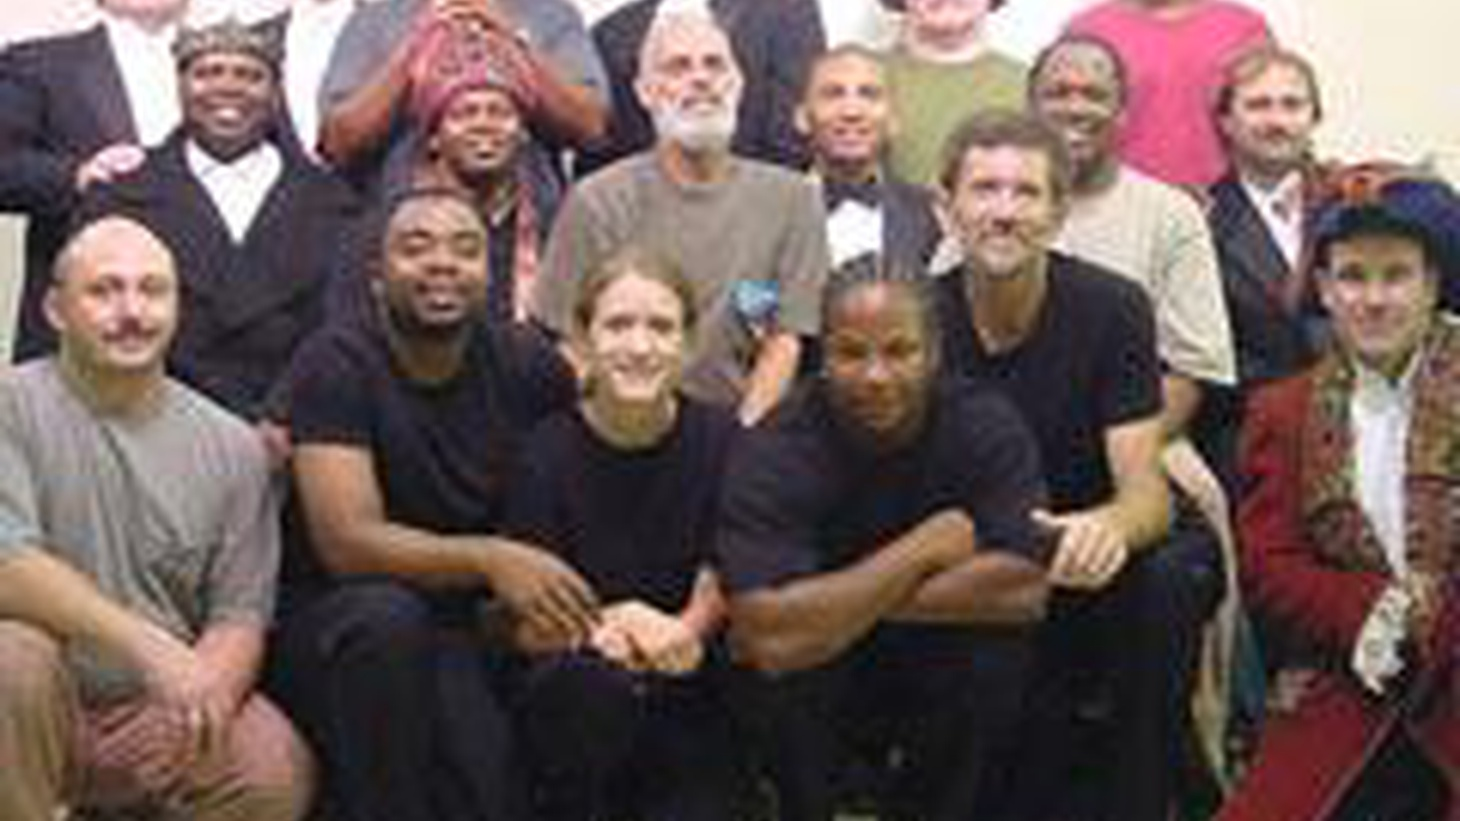 Over six months, reporter and TAL contributor Jack Hitt followed inmates at a high-security prison as they rehearsed and staged a production of the last act of Hamlet.